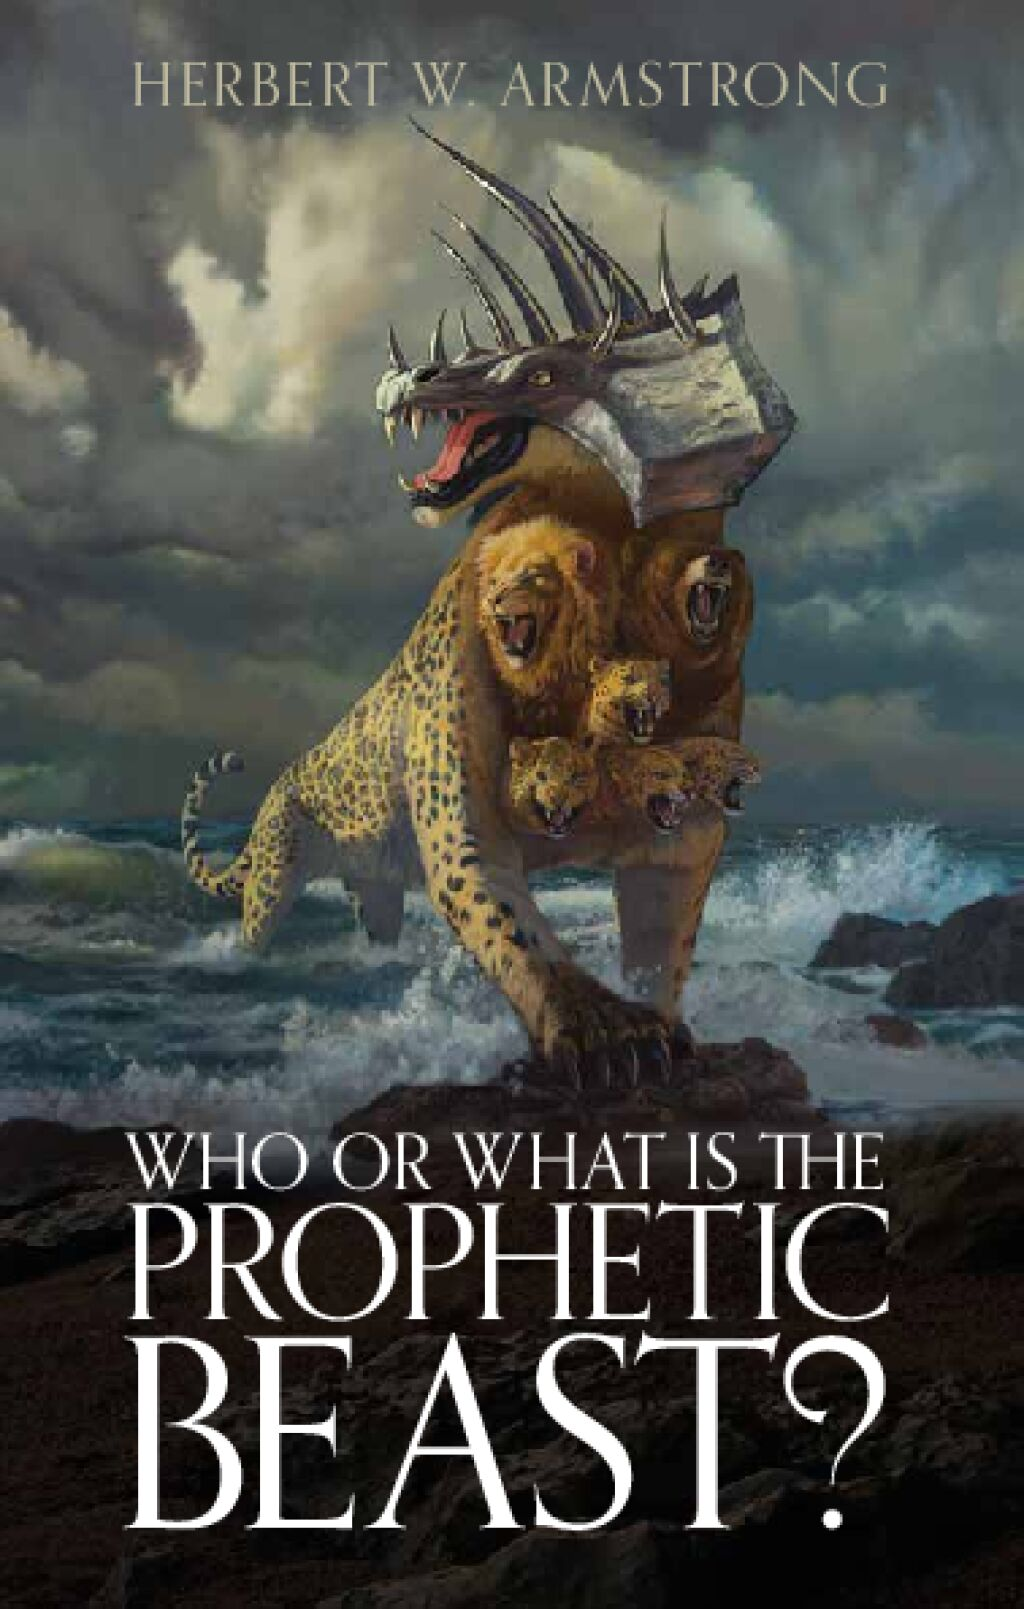 Who or What Is the Prophetic Beast?